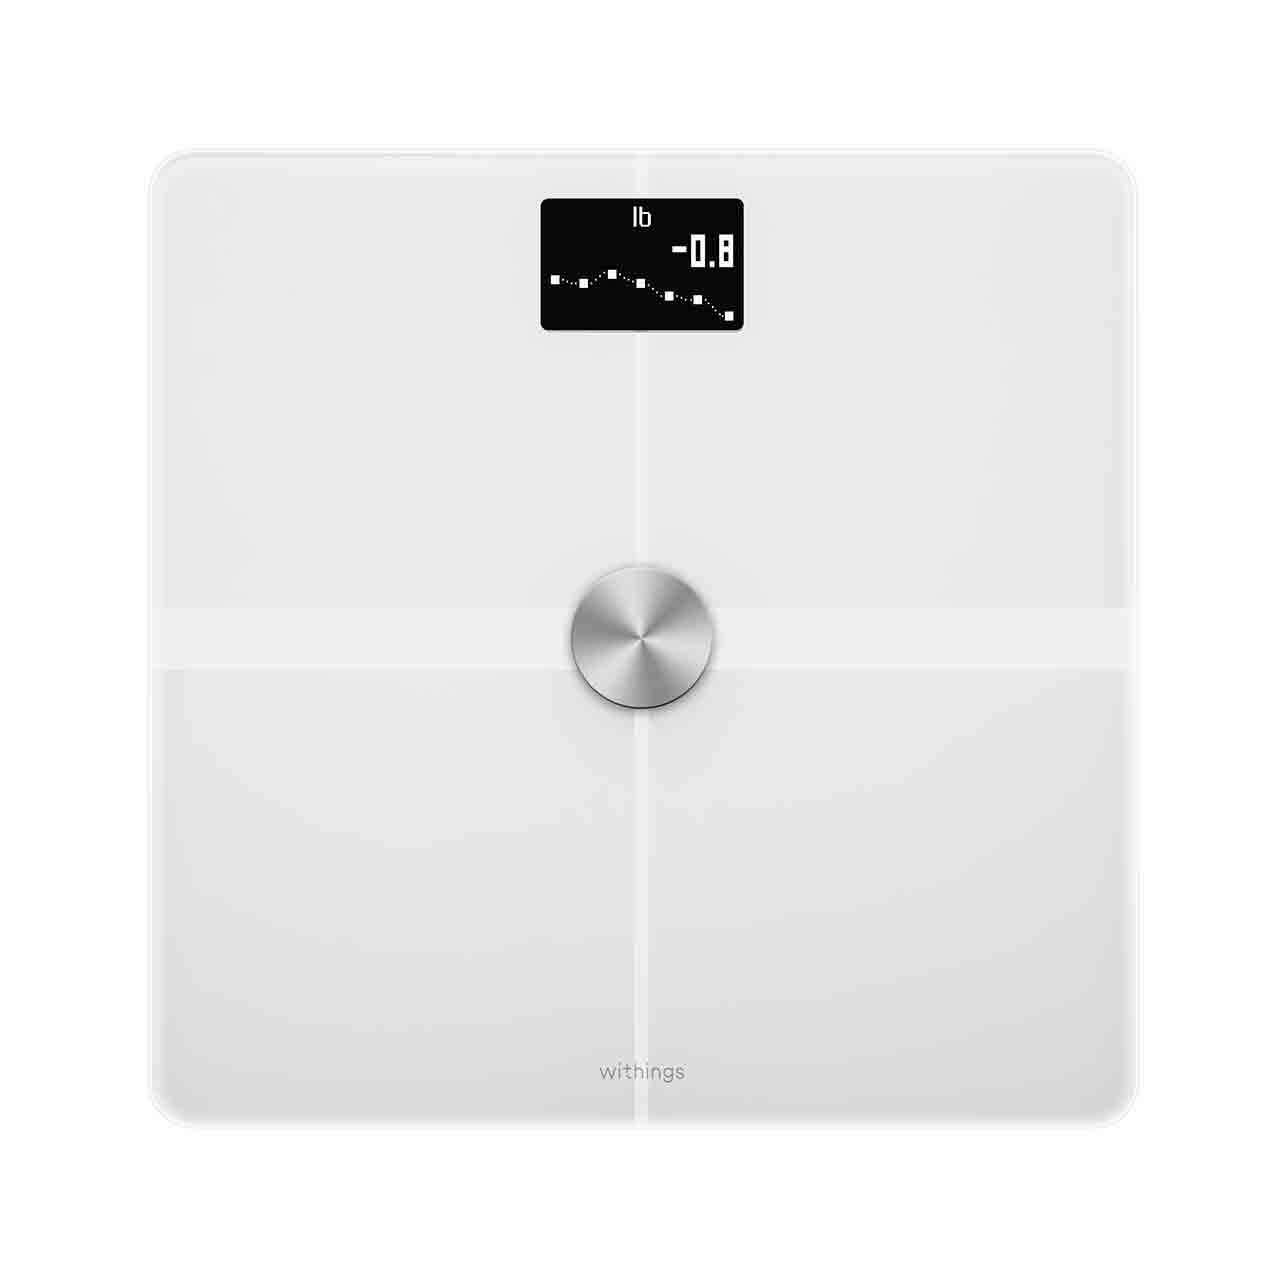 Withings Body+ (Nokia), White - Body Composition Wi-Fi Scale - Weight, Body fat, Muscle mass, Nutrition tracking, Multi-user - Withings Official Store